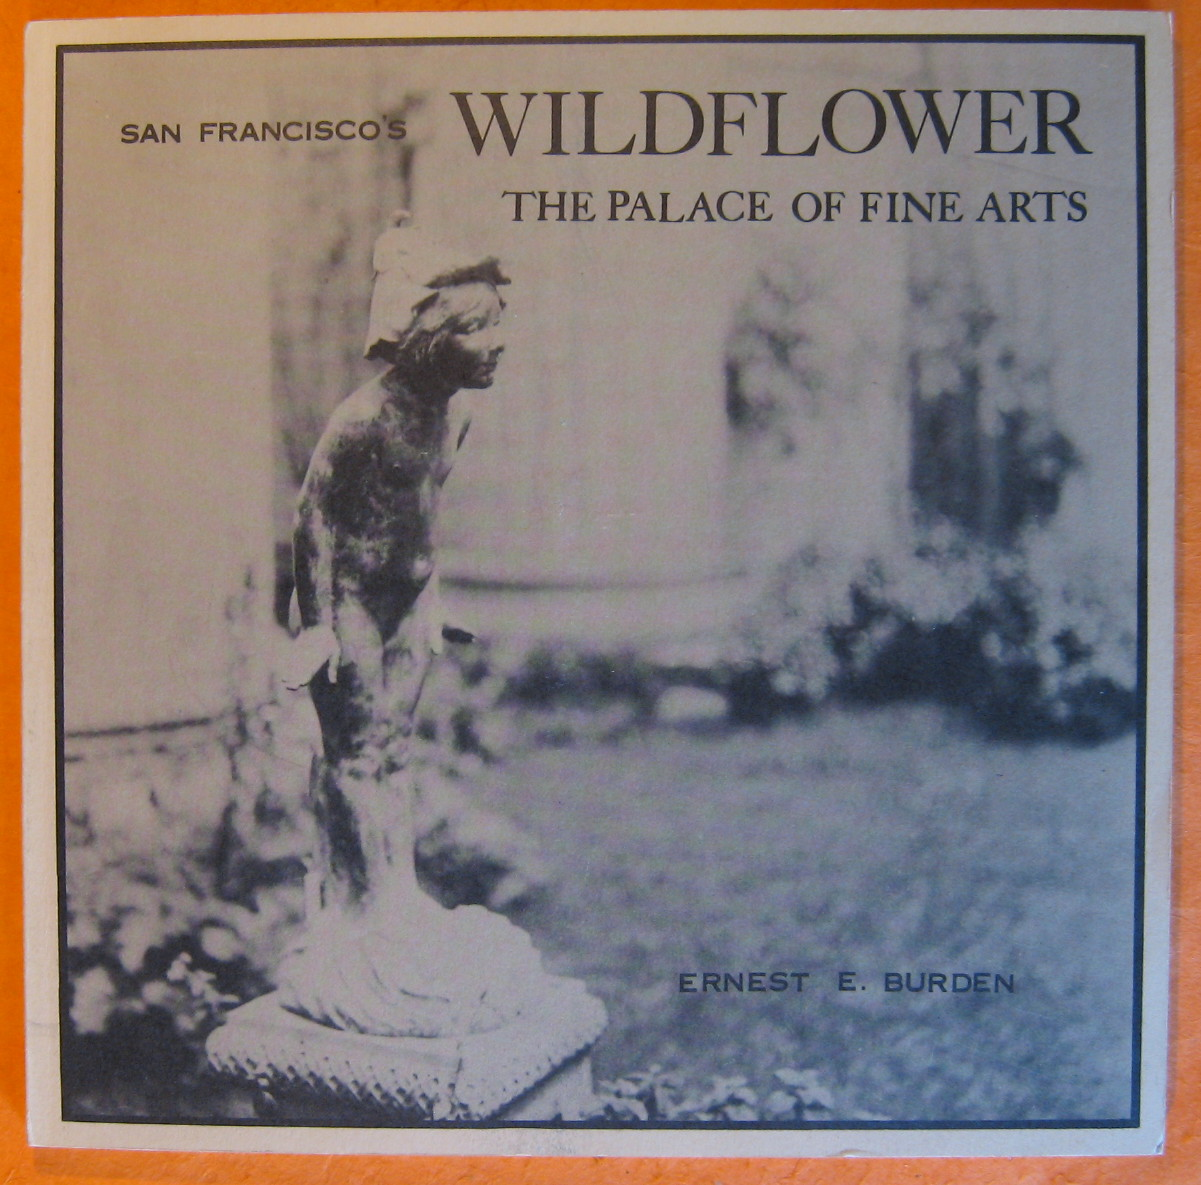 San Francisco's Wildflower:  The Palace of Fine Arts, Burden, Ernest E.;  Stitt, Fred  A.